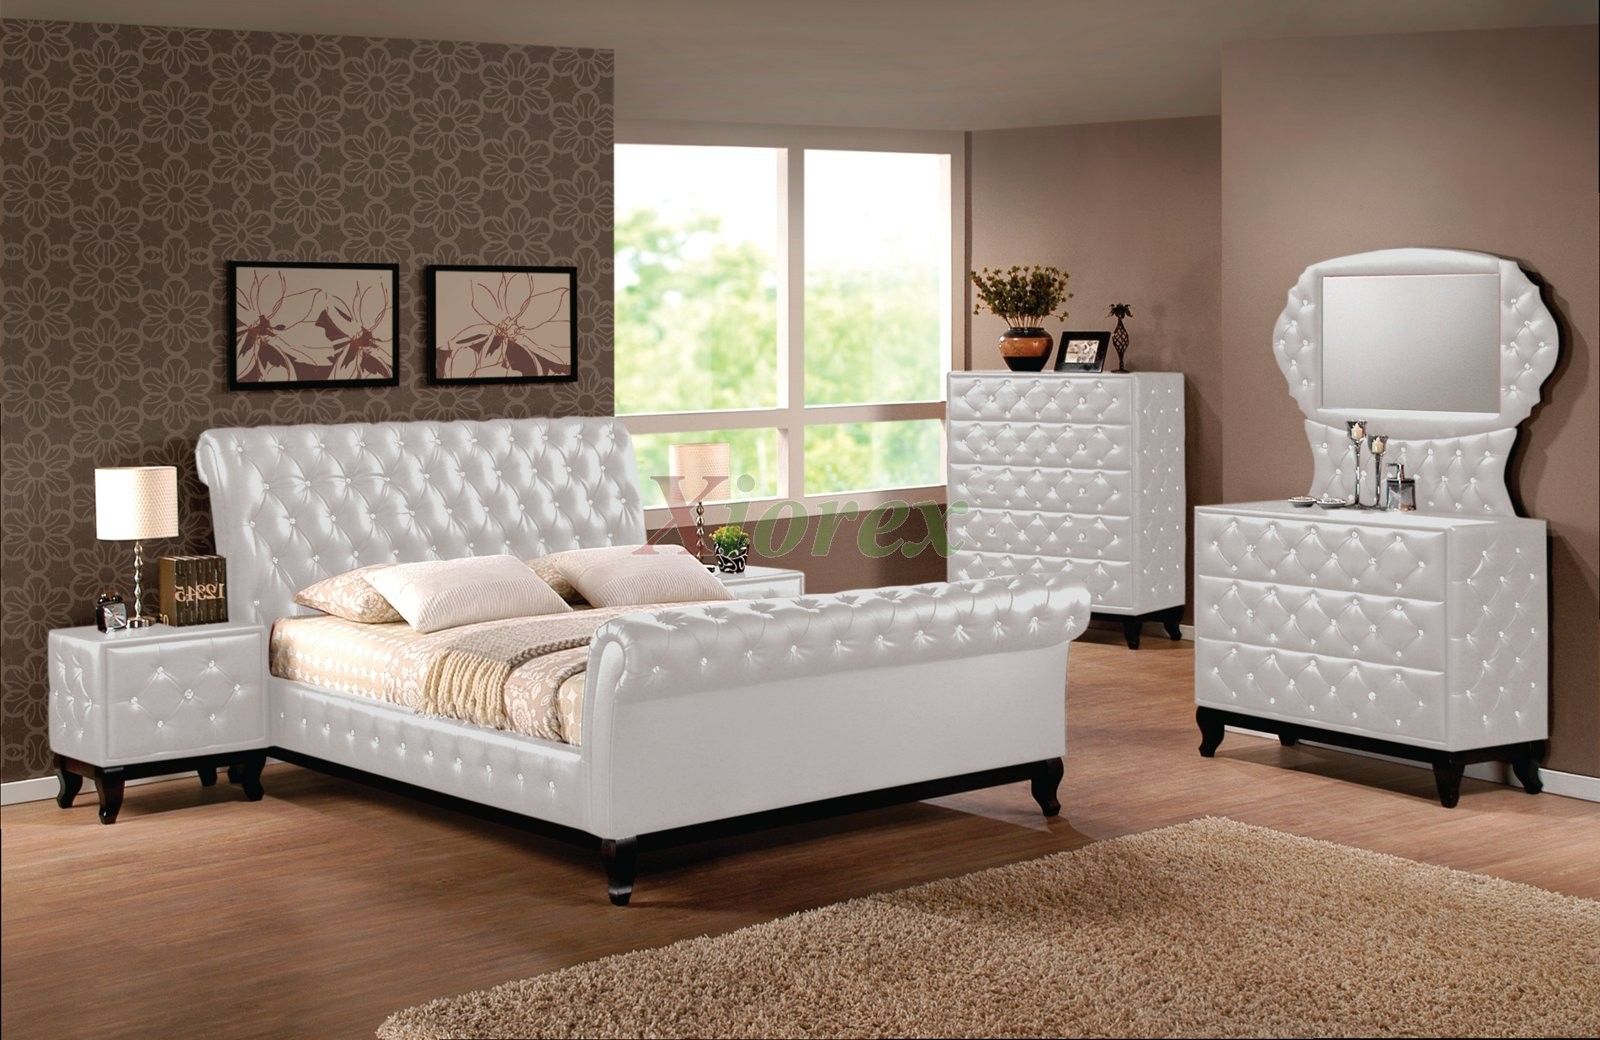 Upholstered sleigh platform bedroom furniture set 151 xiorex for Where to get bedroom furniture